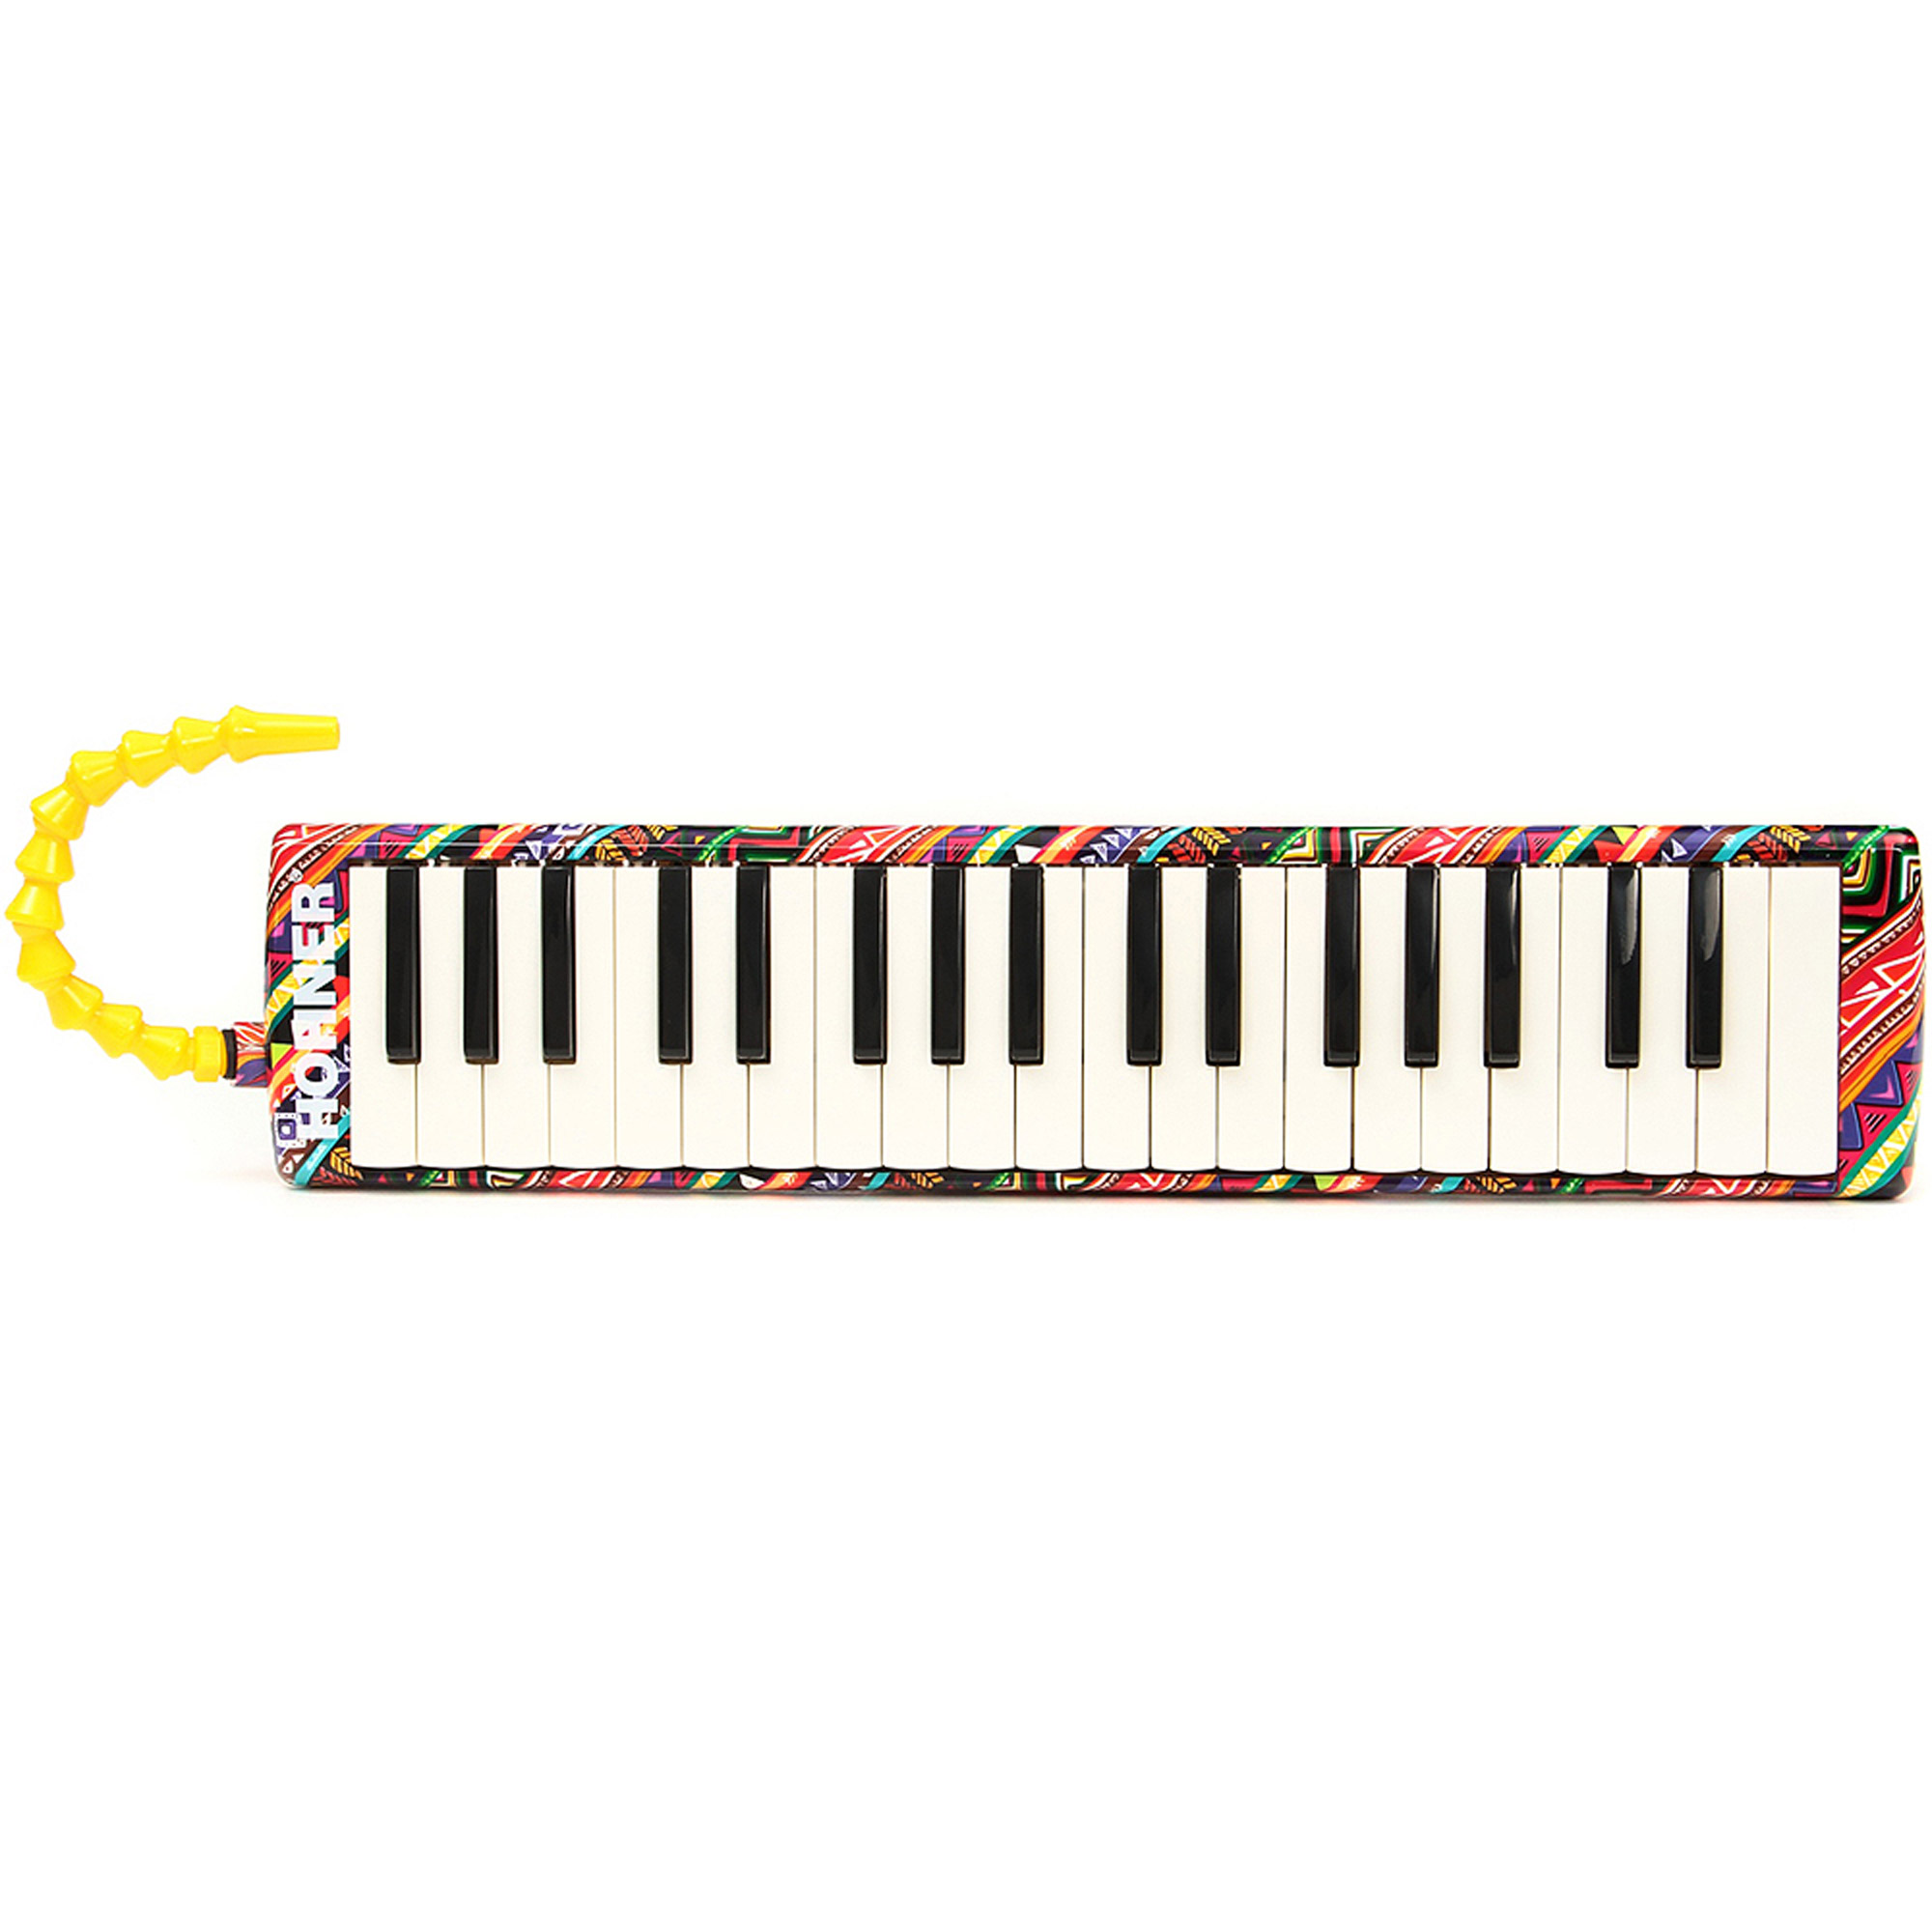 Hohner 37 Key Airboard with Bag by Hohner